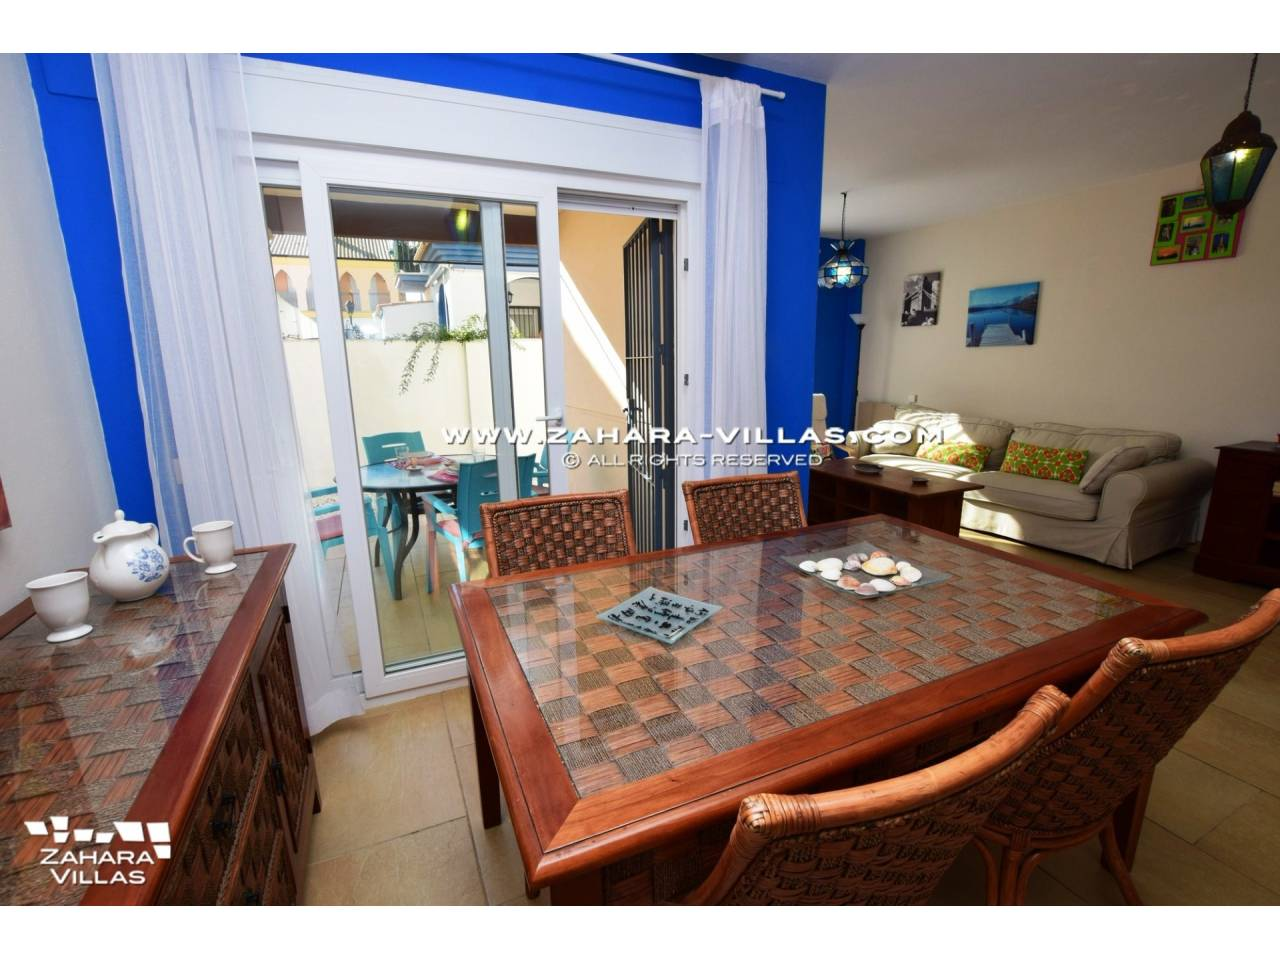 Imagen 3 de Semi-detached house for sale en Zahara de los Atunes